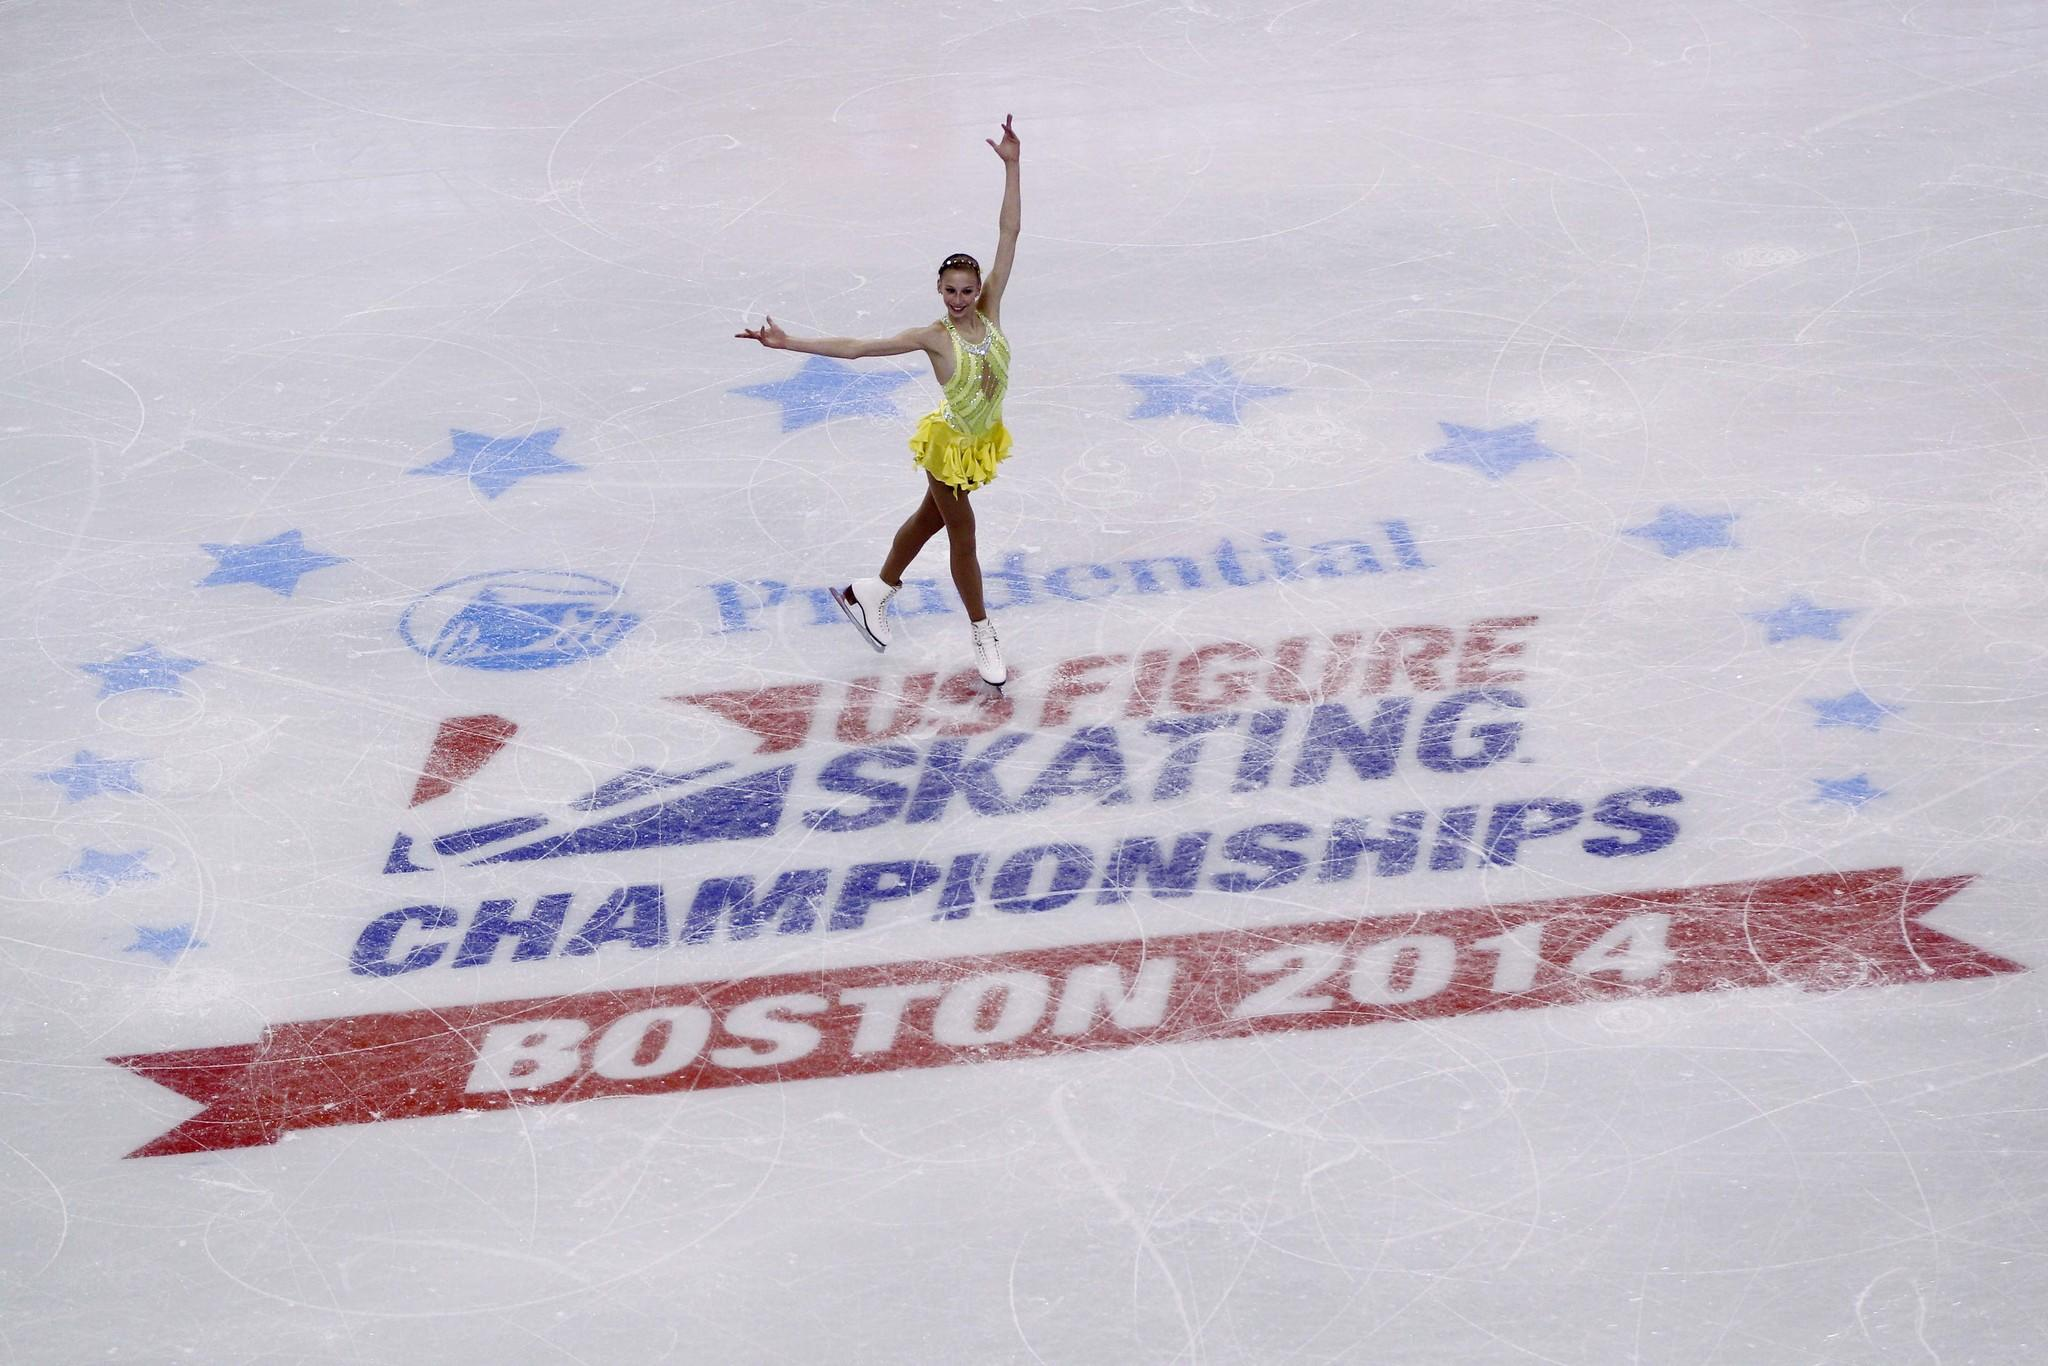 Polina Edmunds performs during the ladies short program in the U.S. Figure Skating Championships at TD Garden.